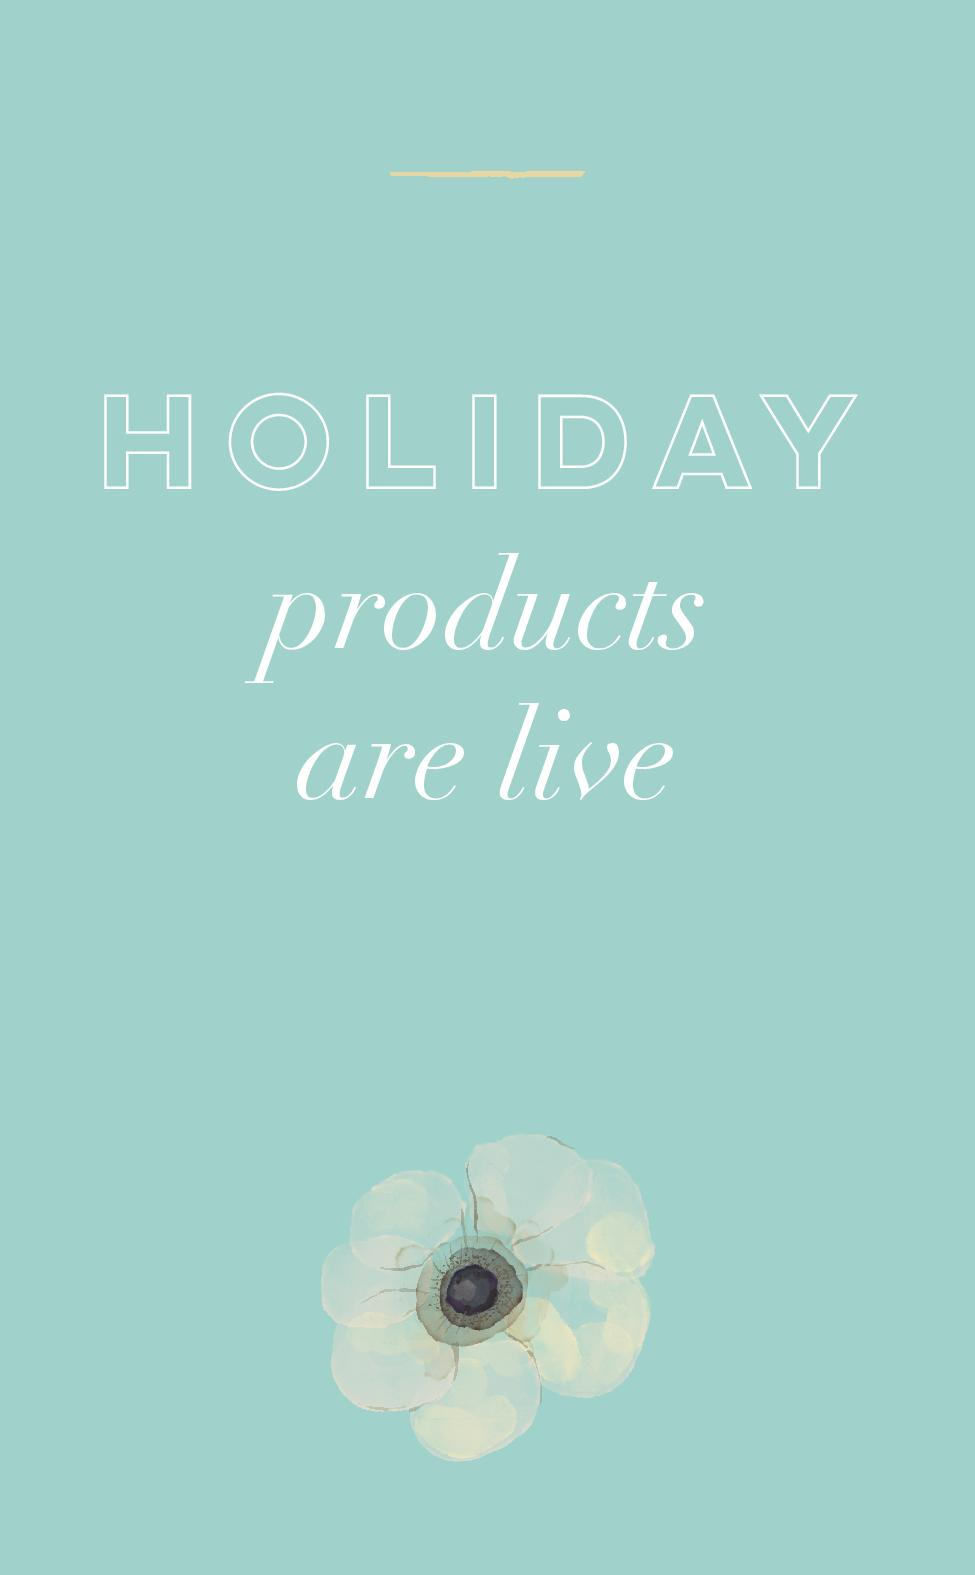 Holiday products are live.jpg